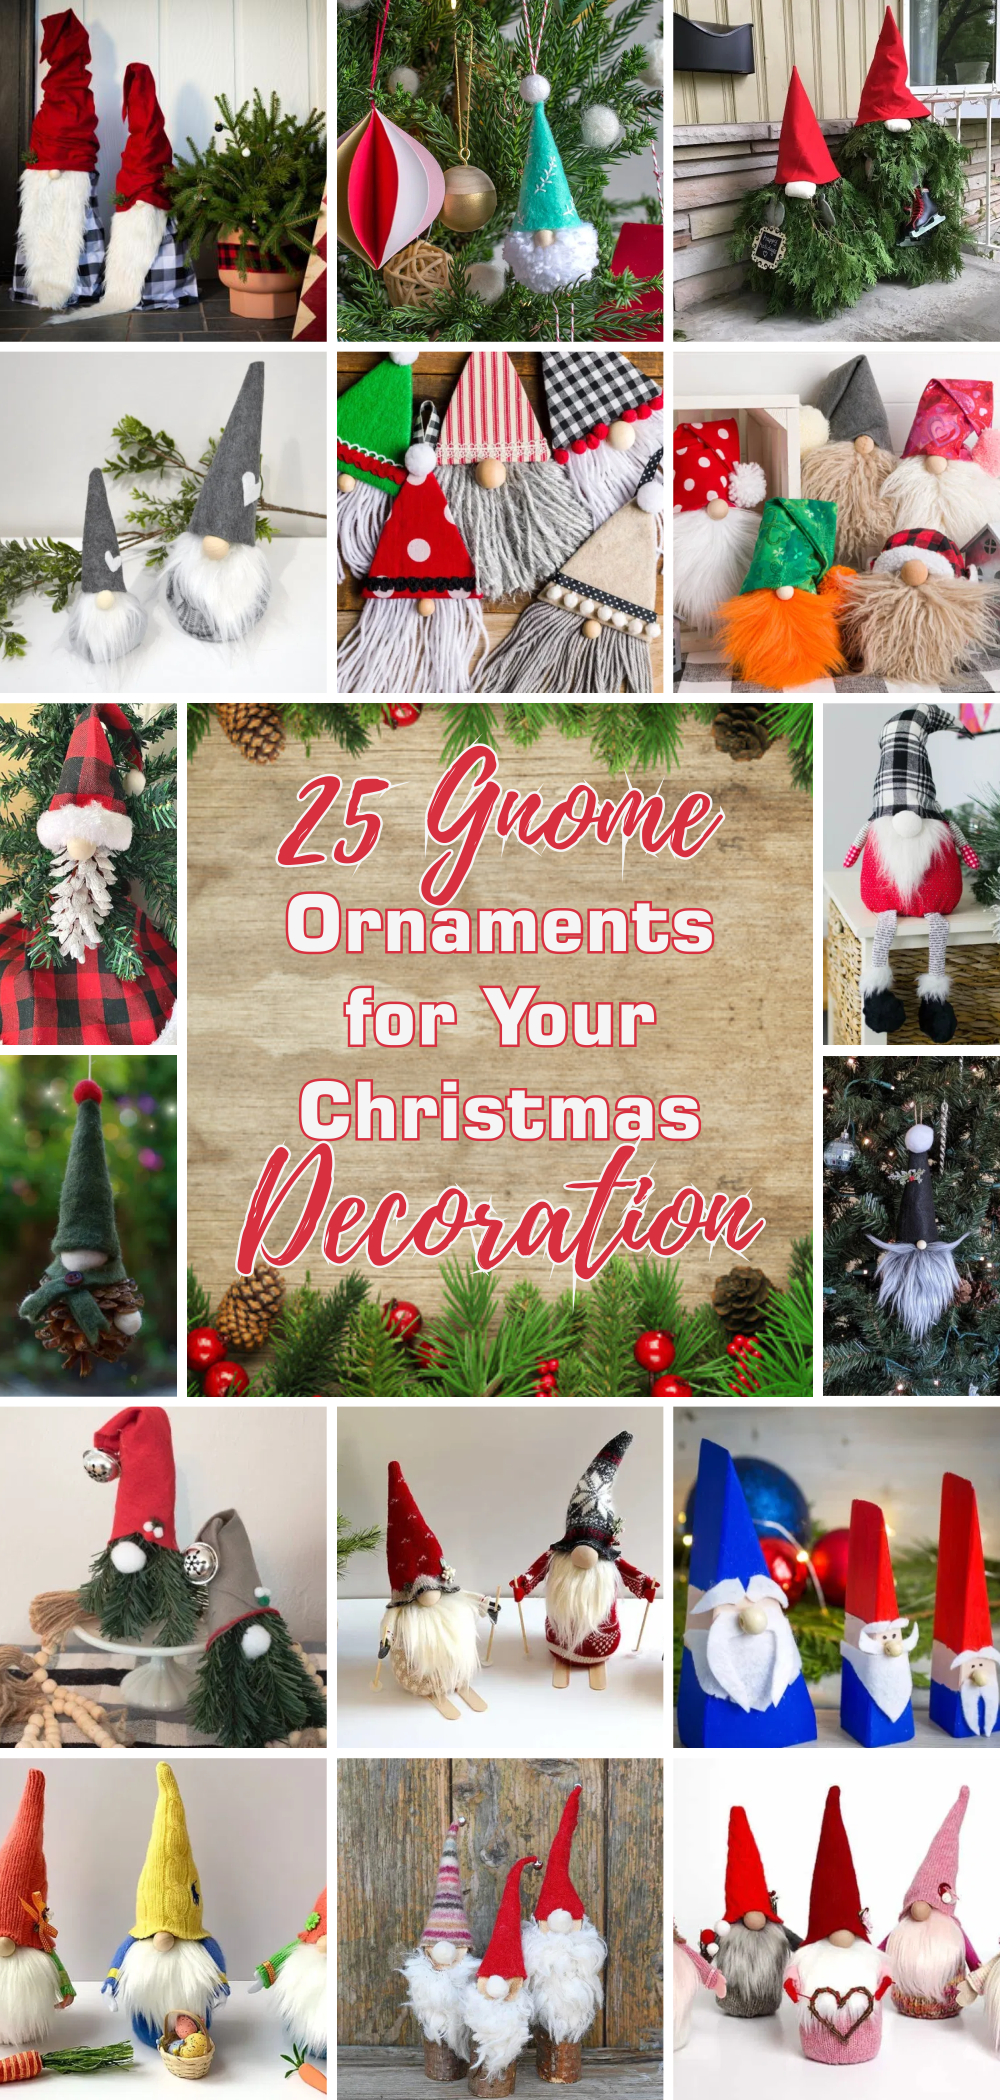 25 gnome ornaments for your christmas decoration 1